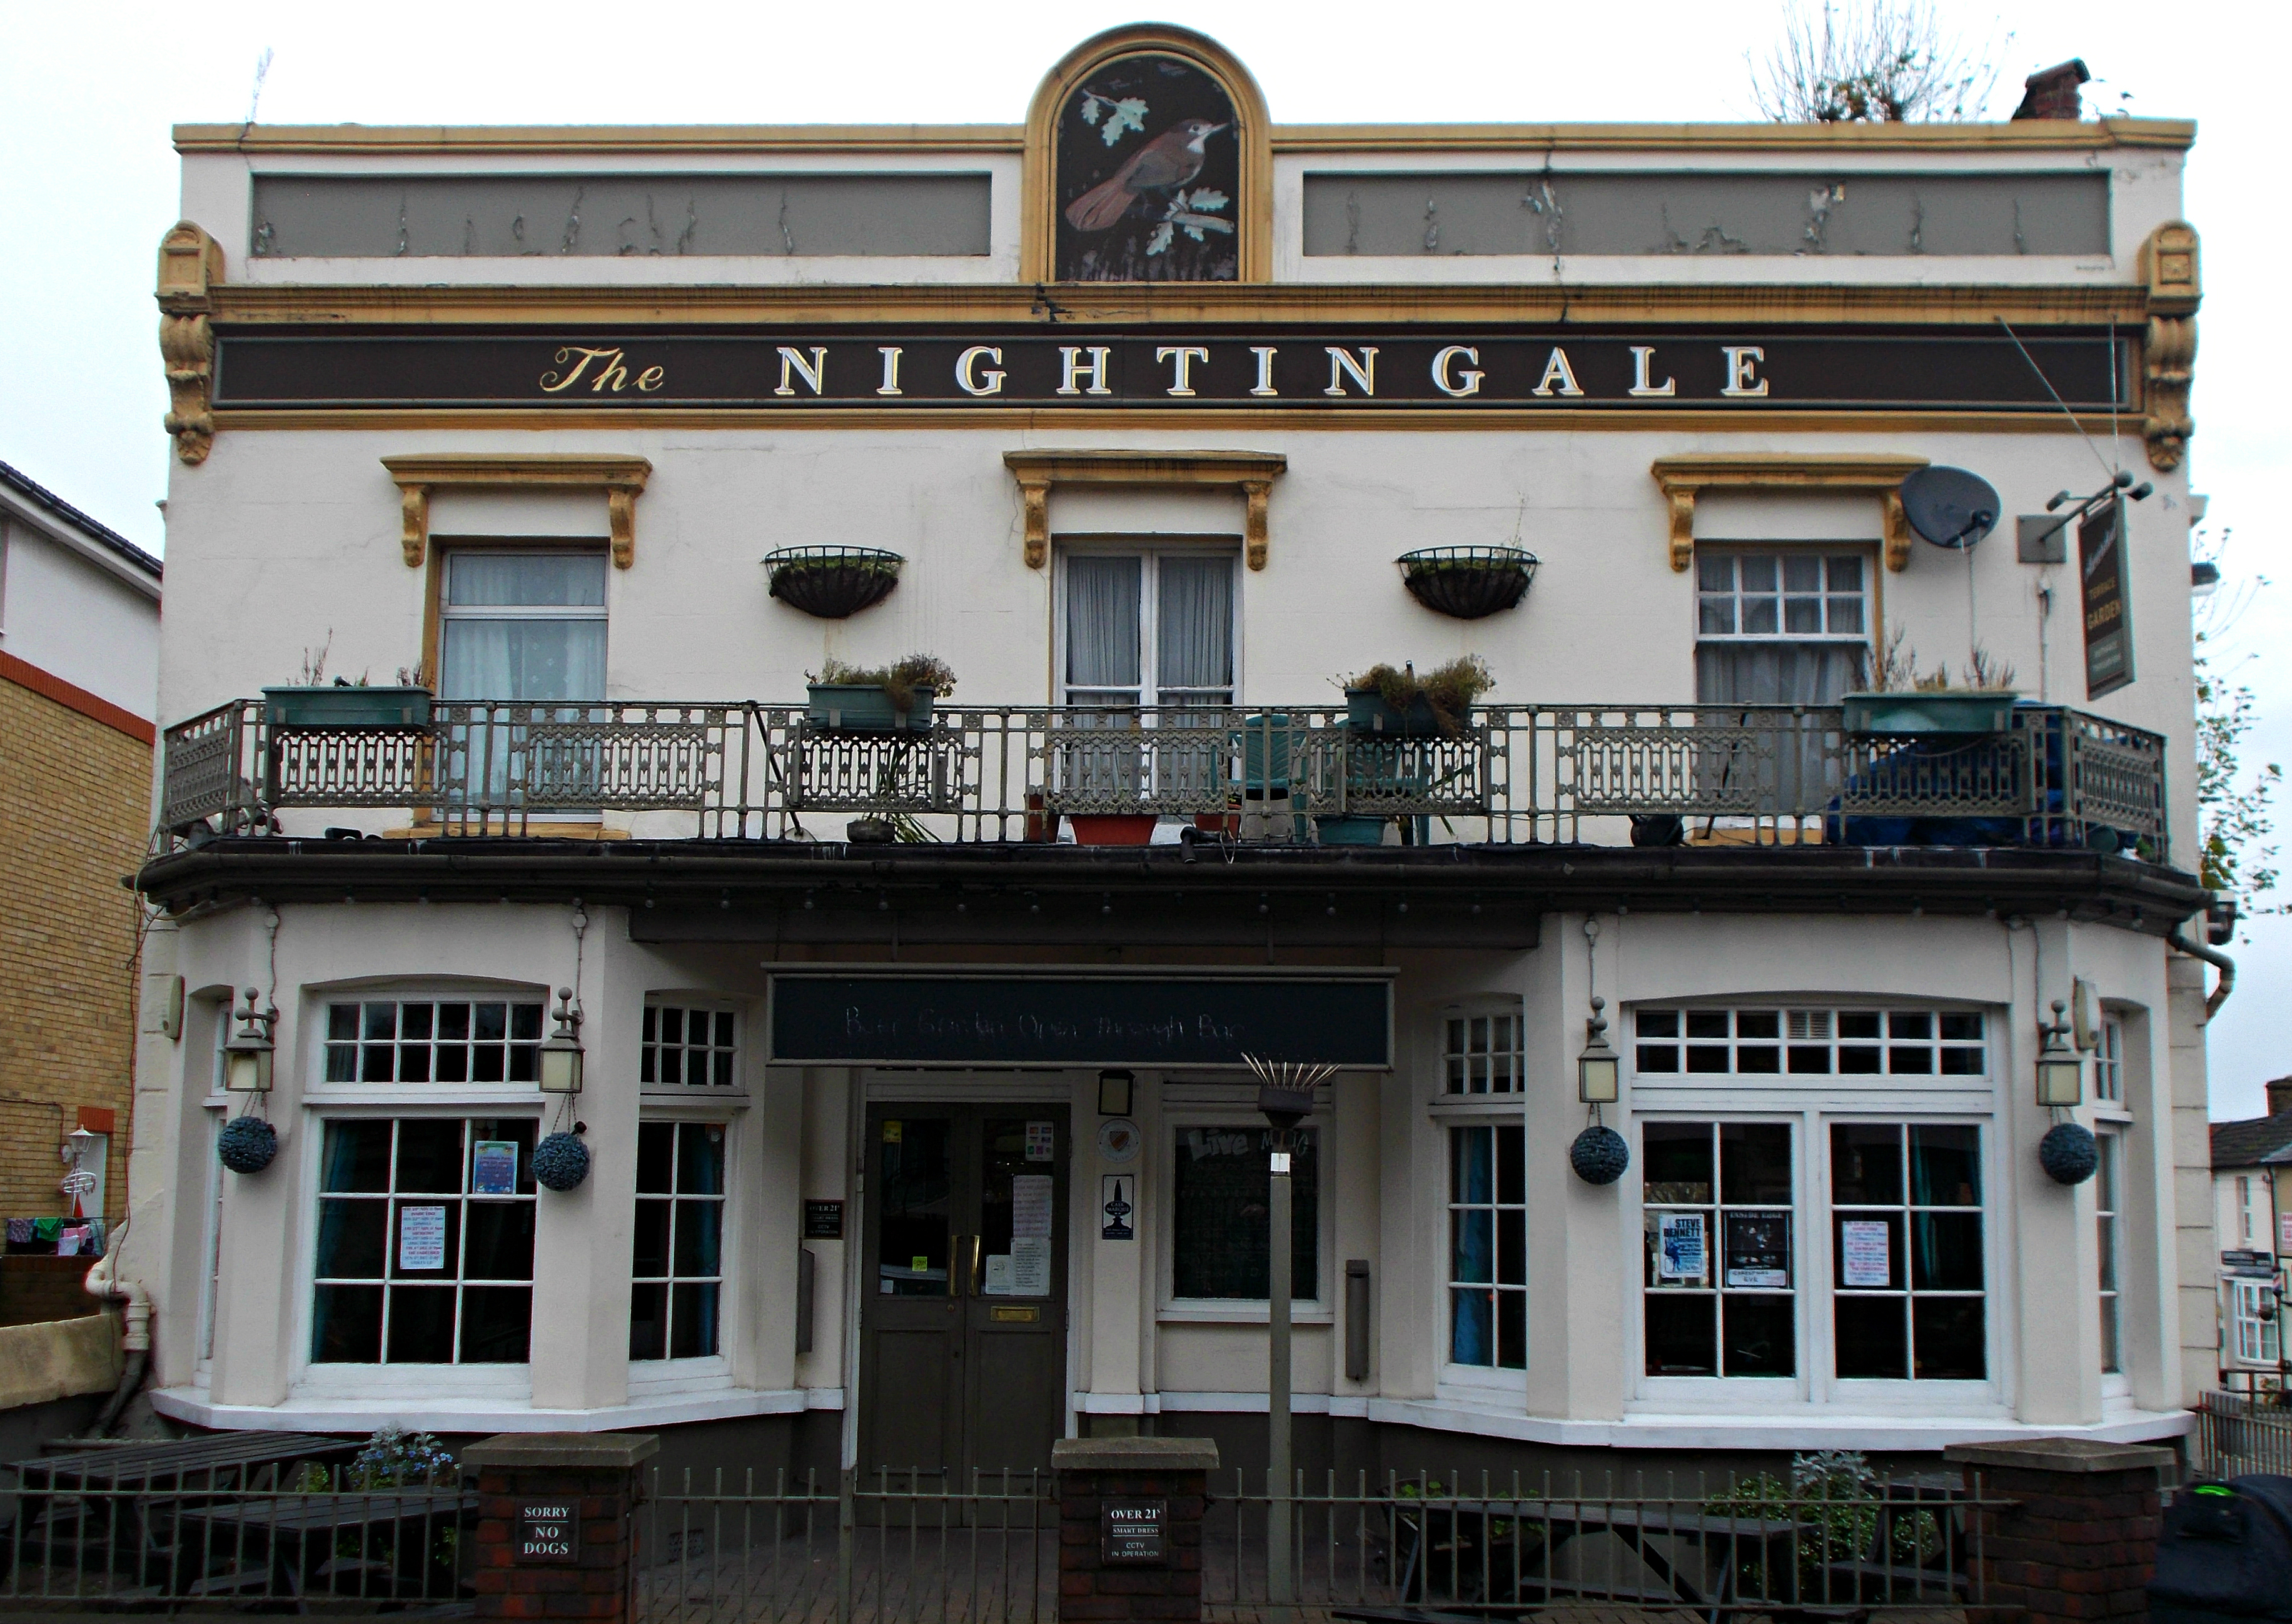 The Nightingale pub, formerly the Jenny Lind, named after a famous Swedish  opera singer